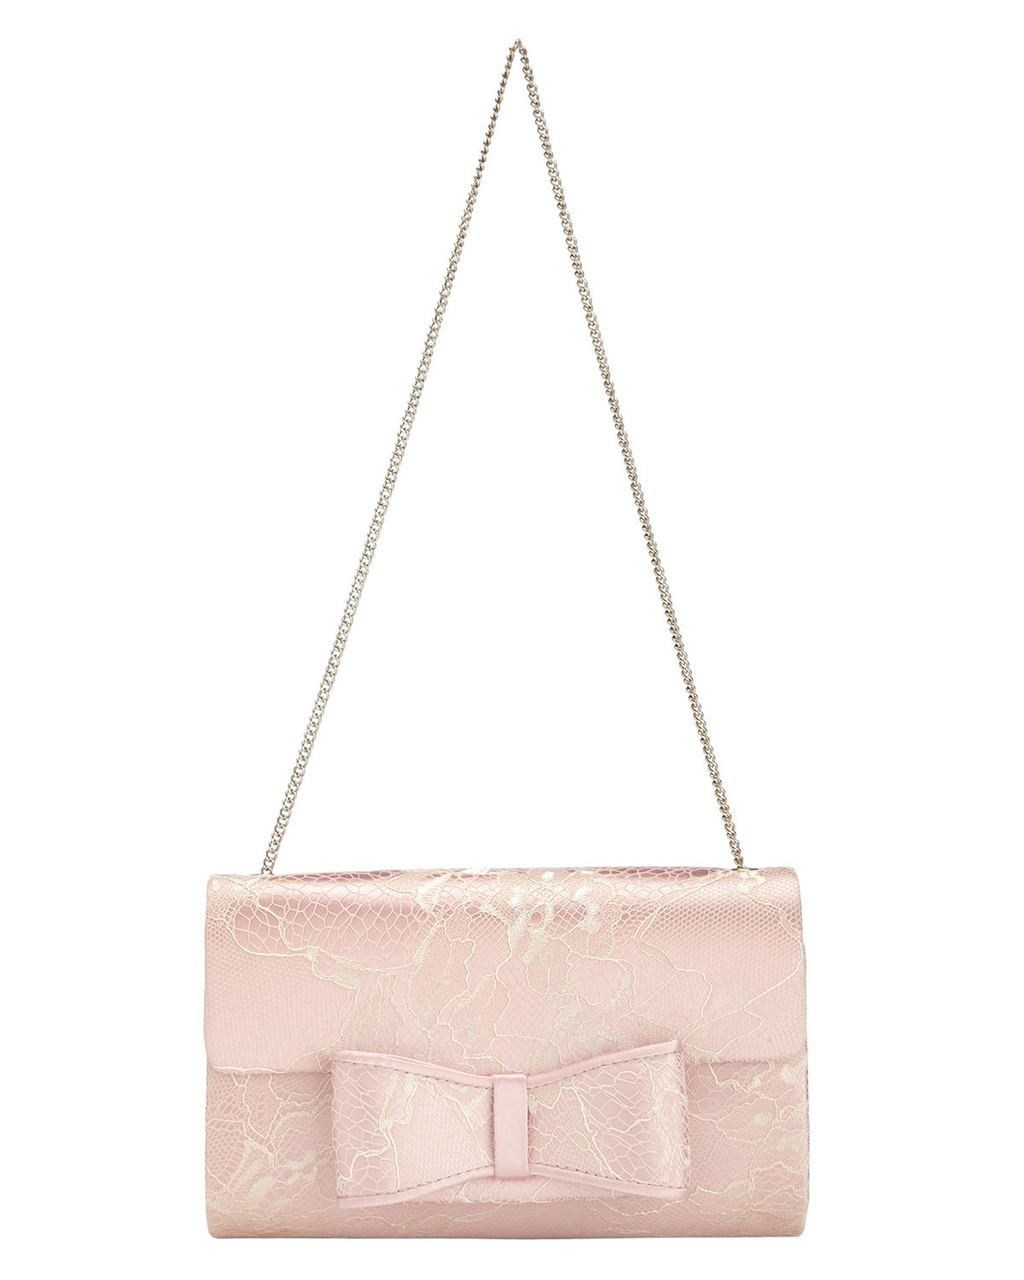 Poppy Lace Bow Clutch - predominant colour: blush; occasions: evening, occasion; type of pattern: standard; style: clutch; length: hand carry; size: small; material: fabric; pattern: plain; finish: plain; embellishment: lace; season: s/s 2016; wardrobe: event